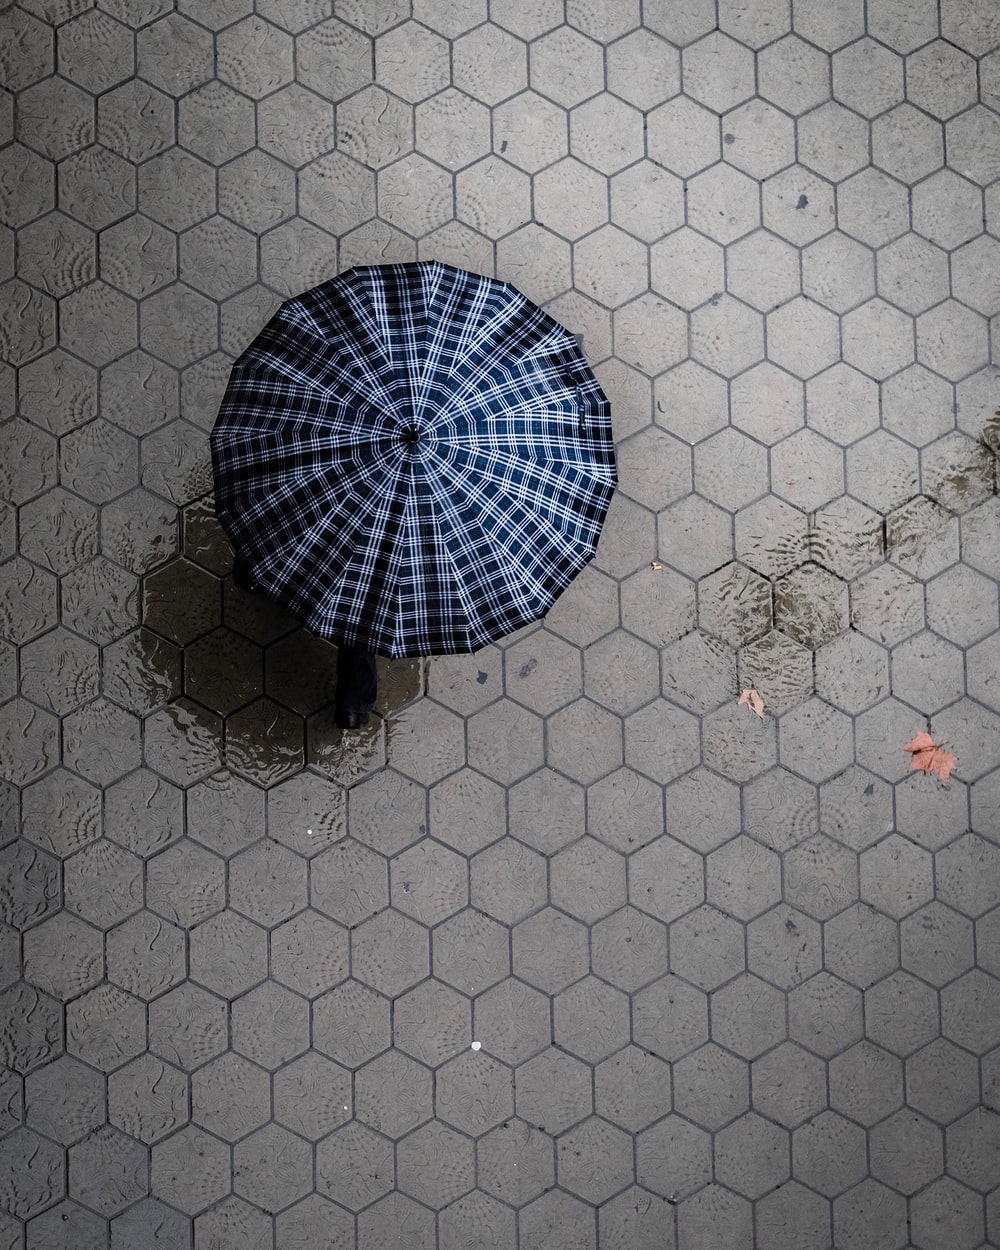 bird's eye view photograph of white and black umbrella on surface